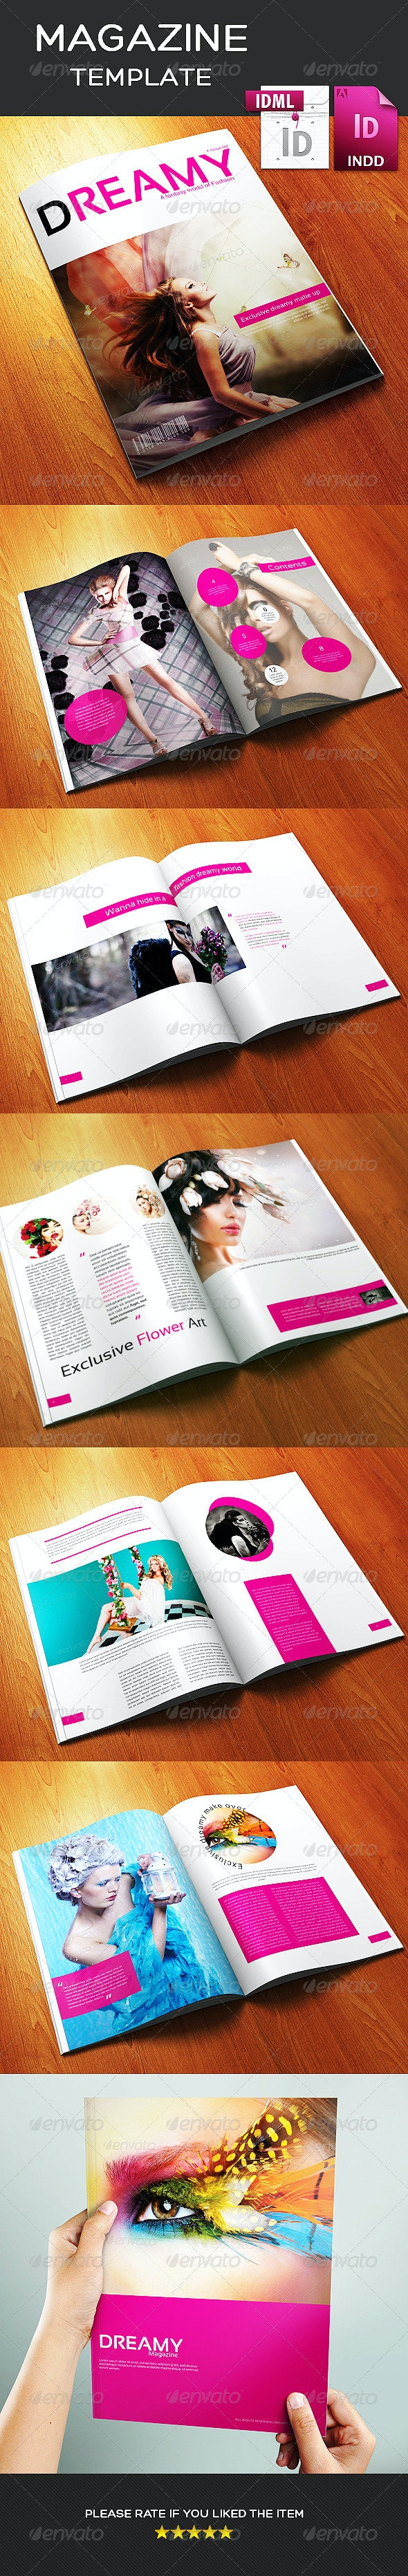 12 Page A3 Size Indesign Dreamy Fashion Magazine - Magazines Print Templates